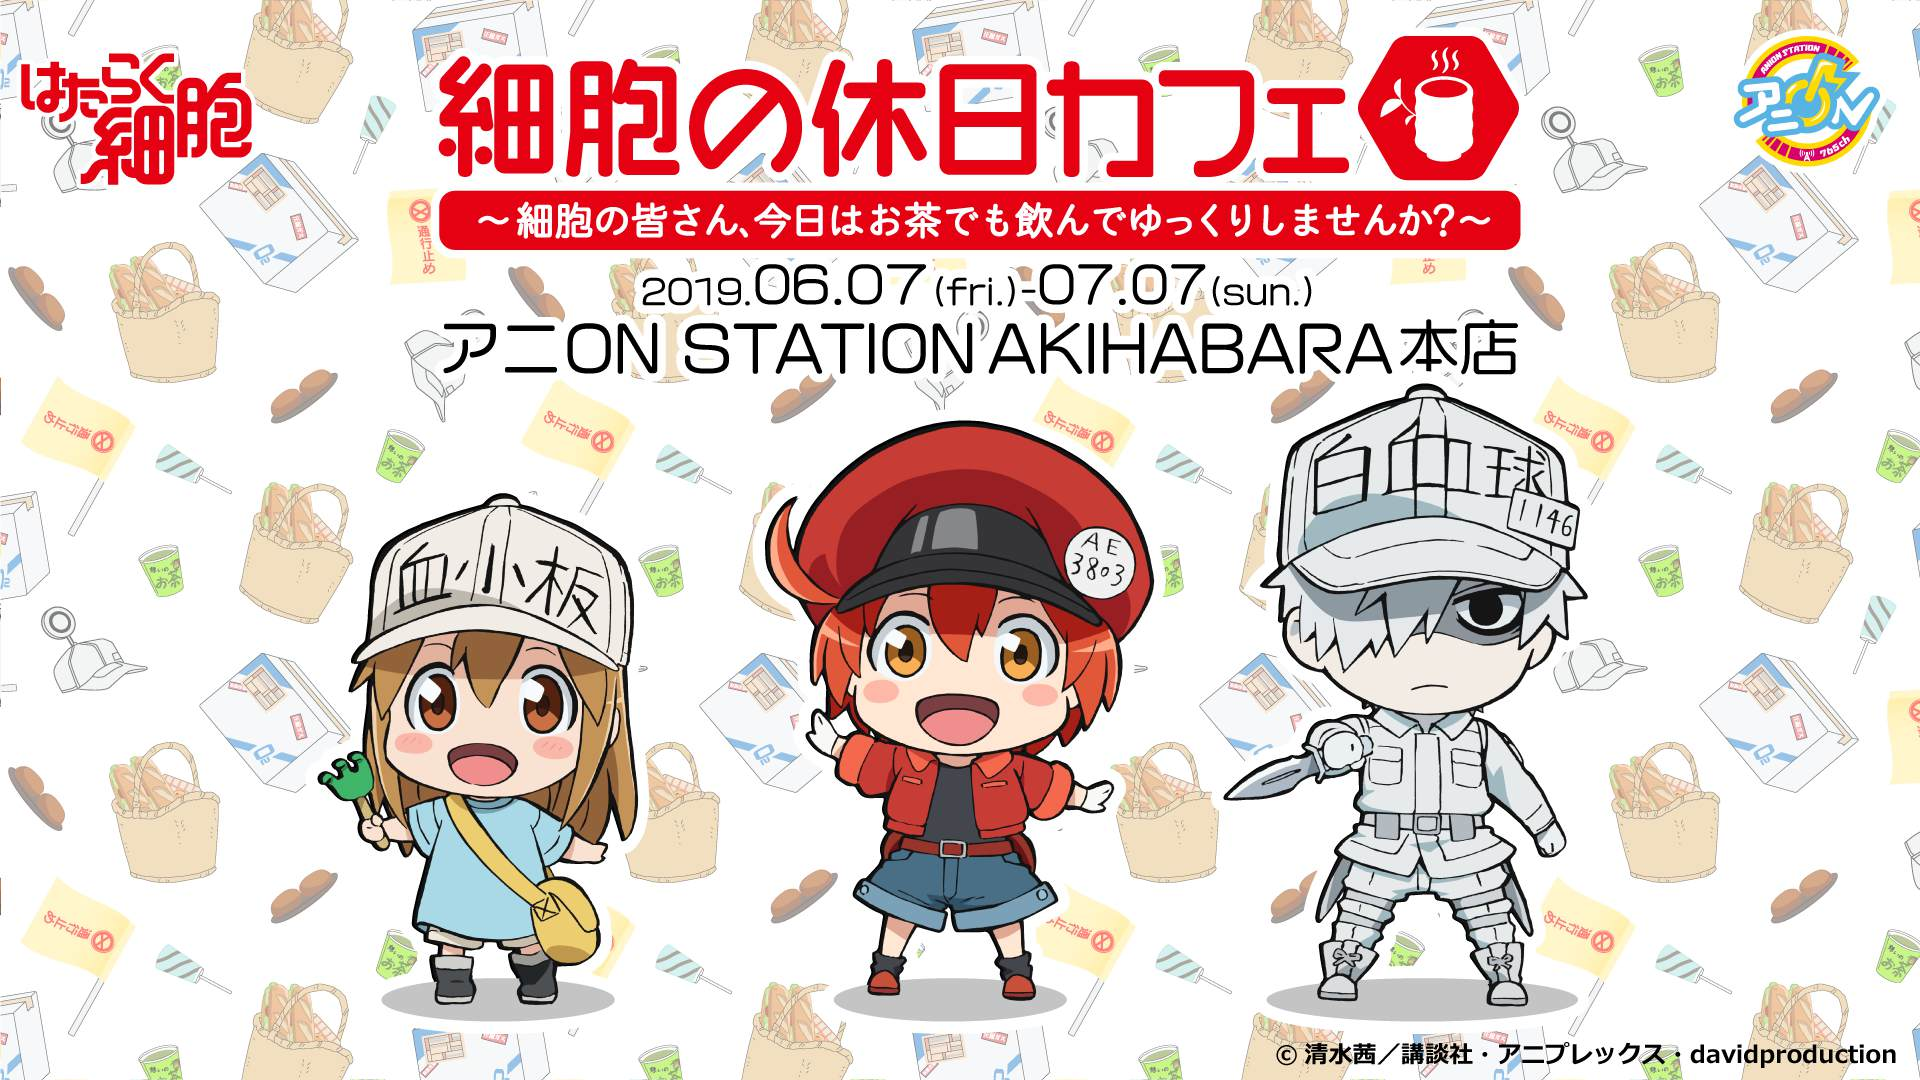 Cells at Work! Anime Themed Cafe to Open in Akihabara | MOSHI MOSHI